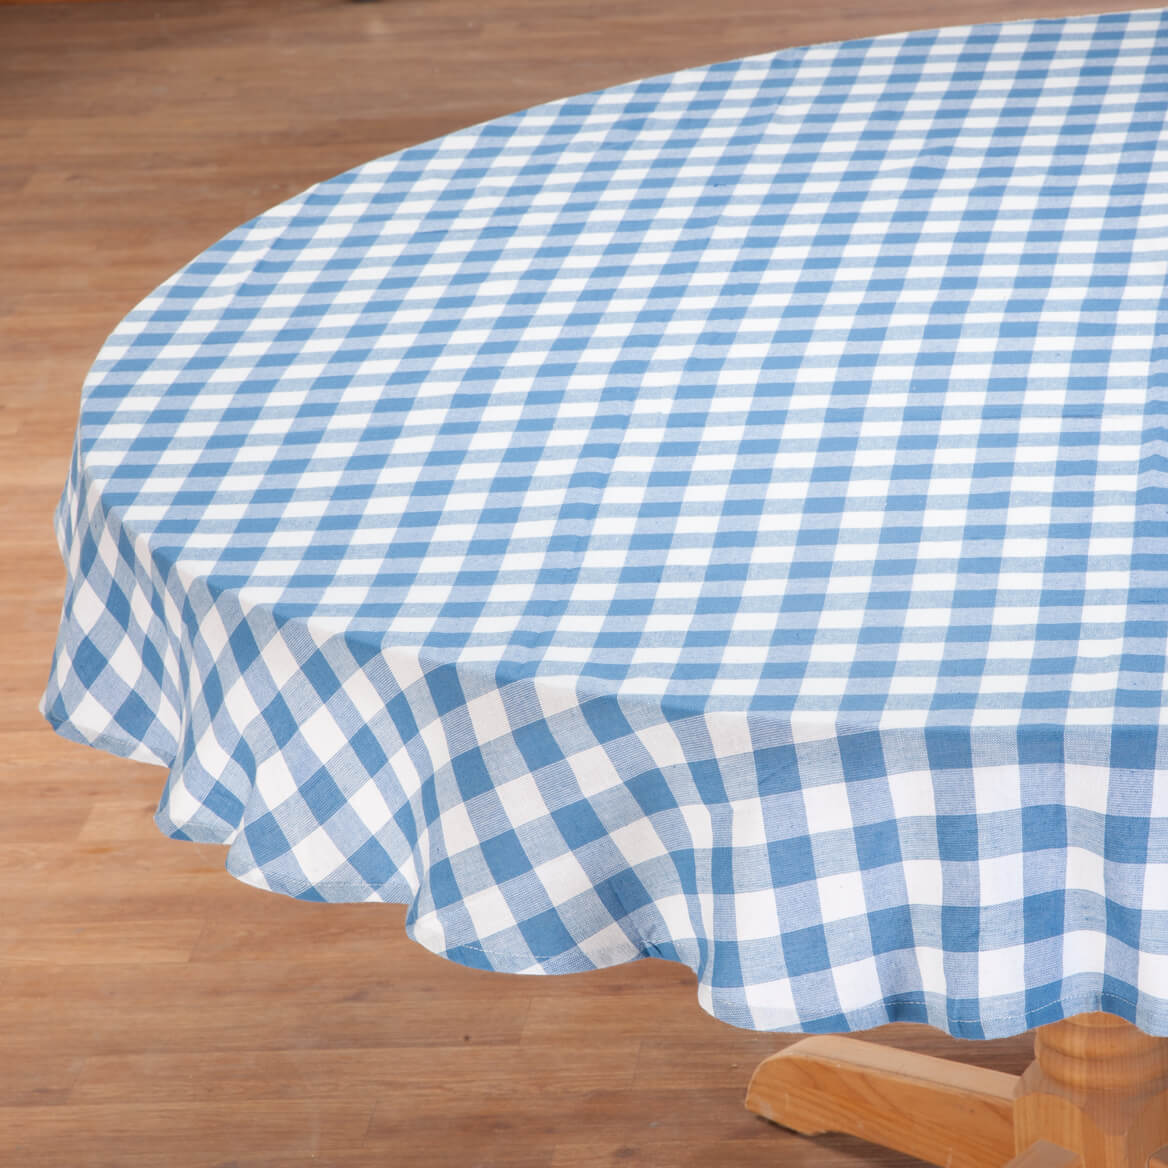 Amazing 100% Cotton Gingham Tablecloth 359112